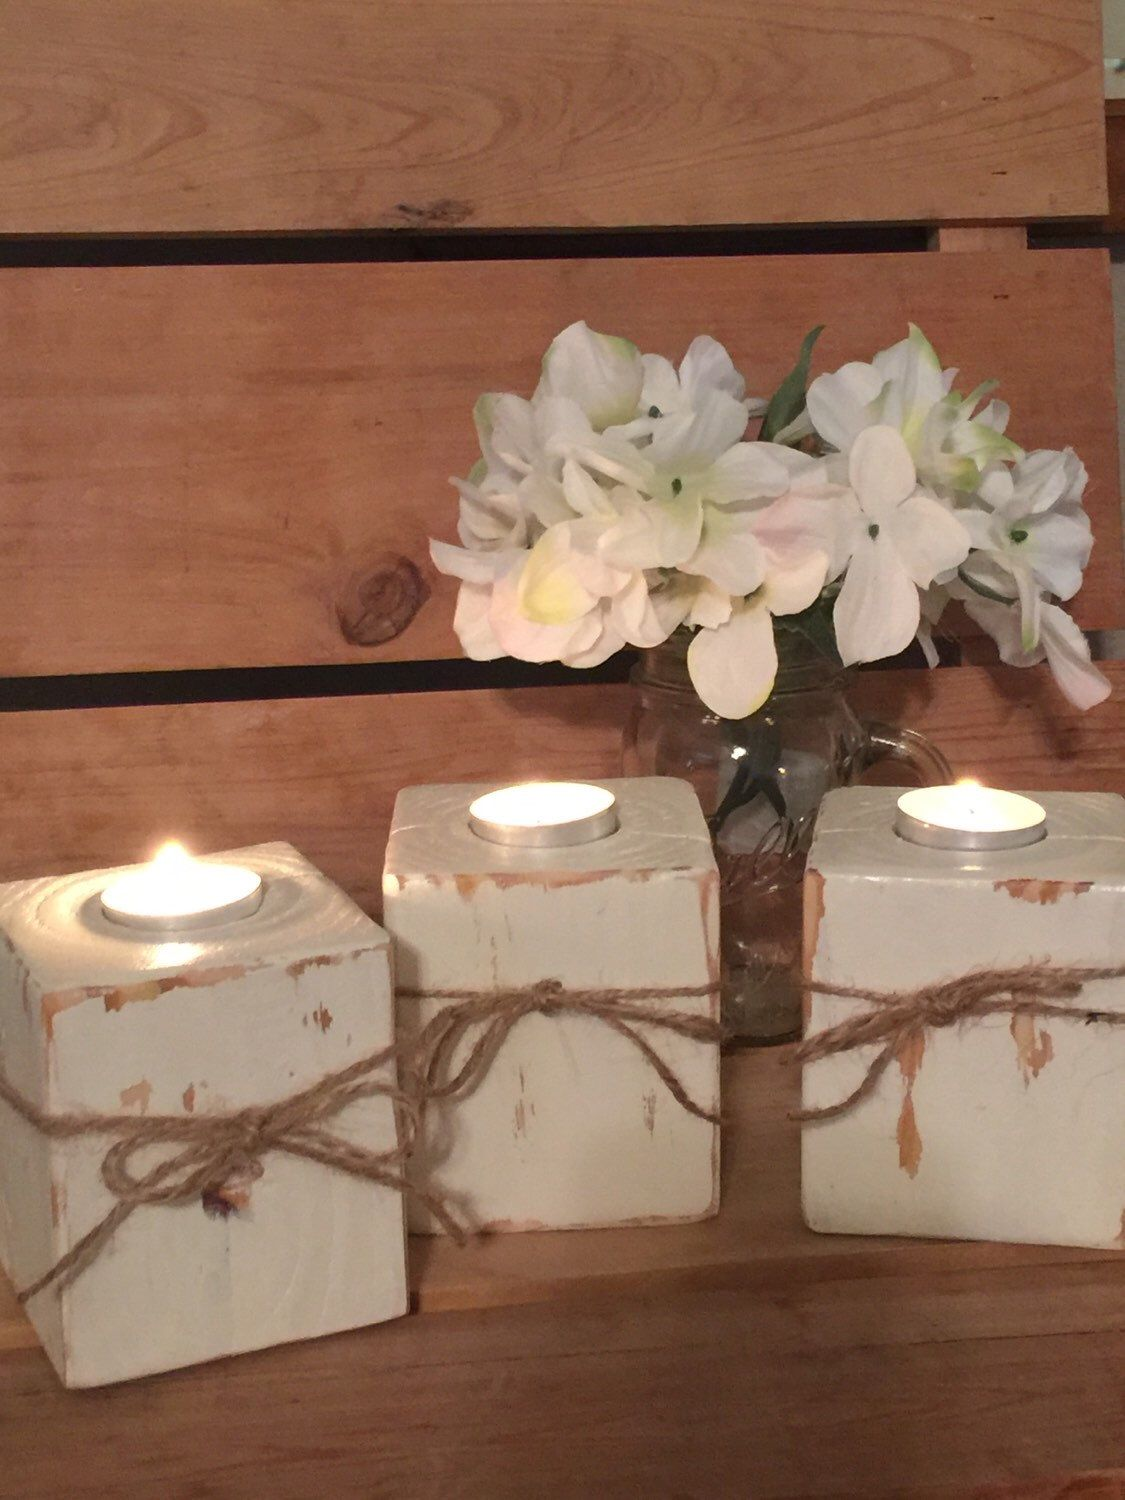 Wooden Candle Holder Set Country Home Decor New Home Gifts Rustic Candle Holder Centerpiece Farmhouse Decor Wooden Candler Holders